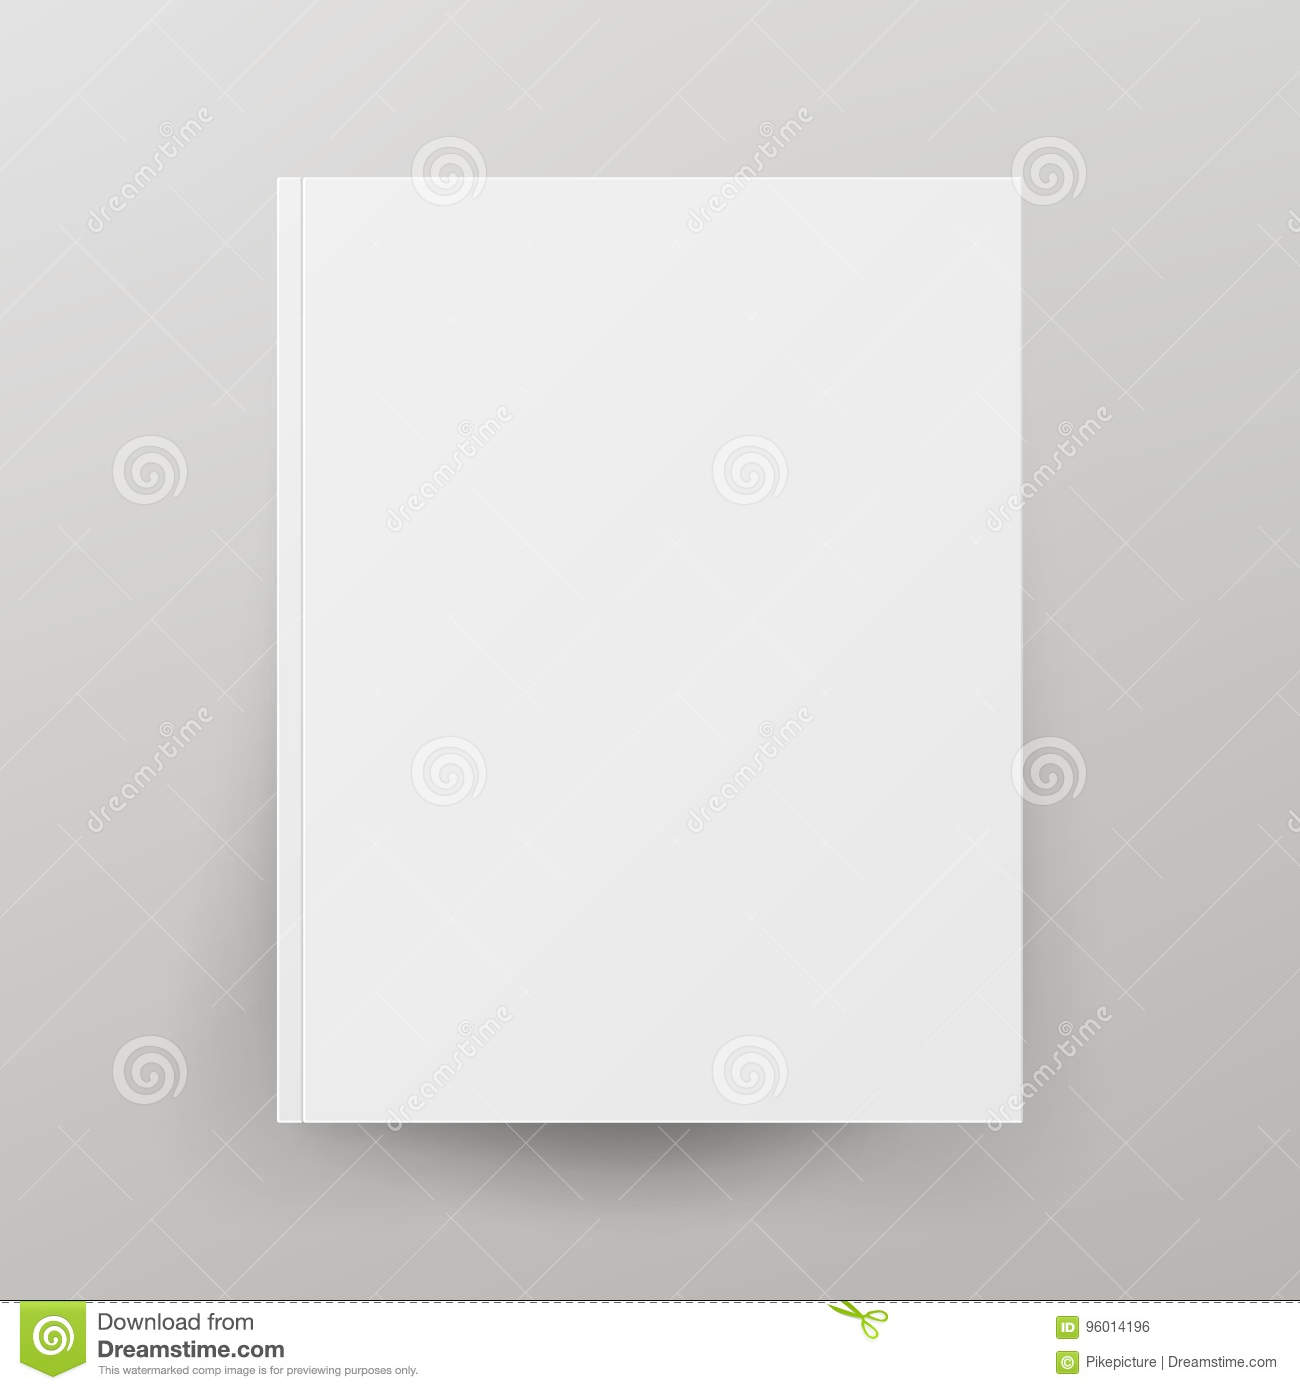 blank book cover vector illustration isolated on gray background